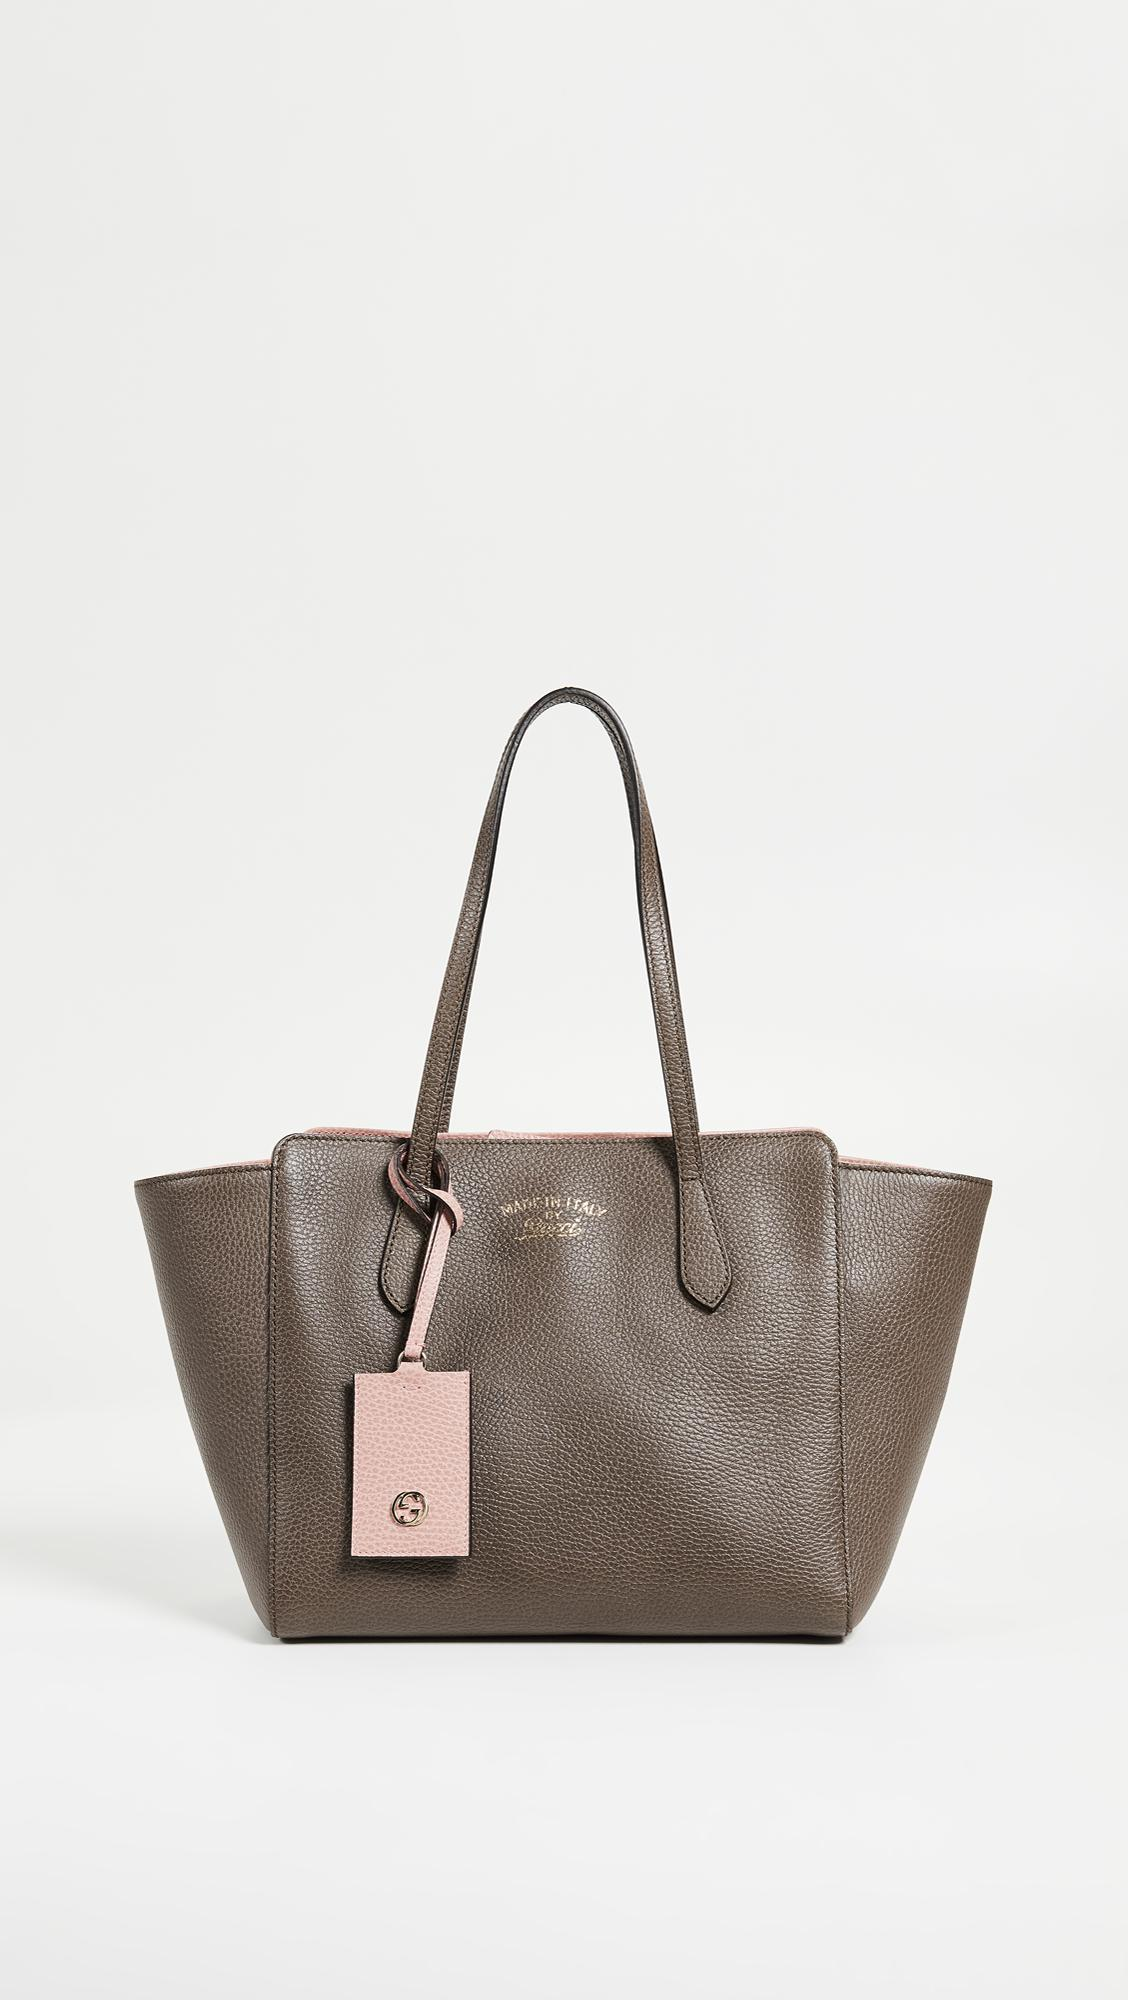 3774cf51146 Lyst - What Goes Around Comes Around Gucci Swing Tote in Gray